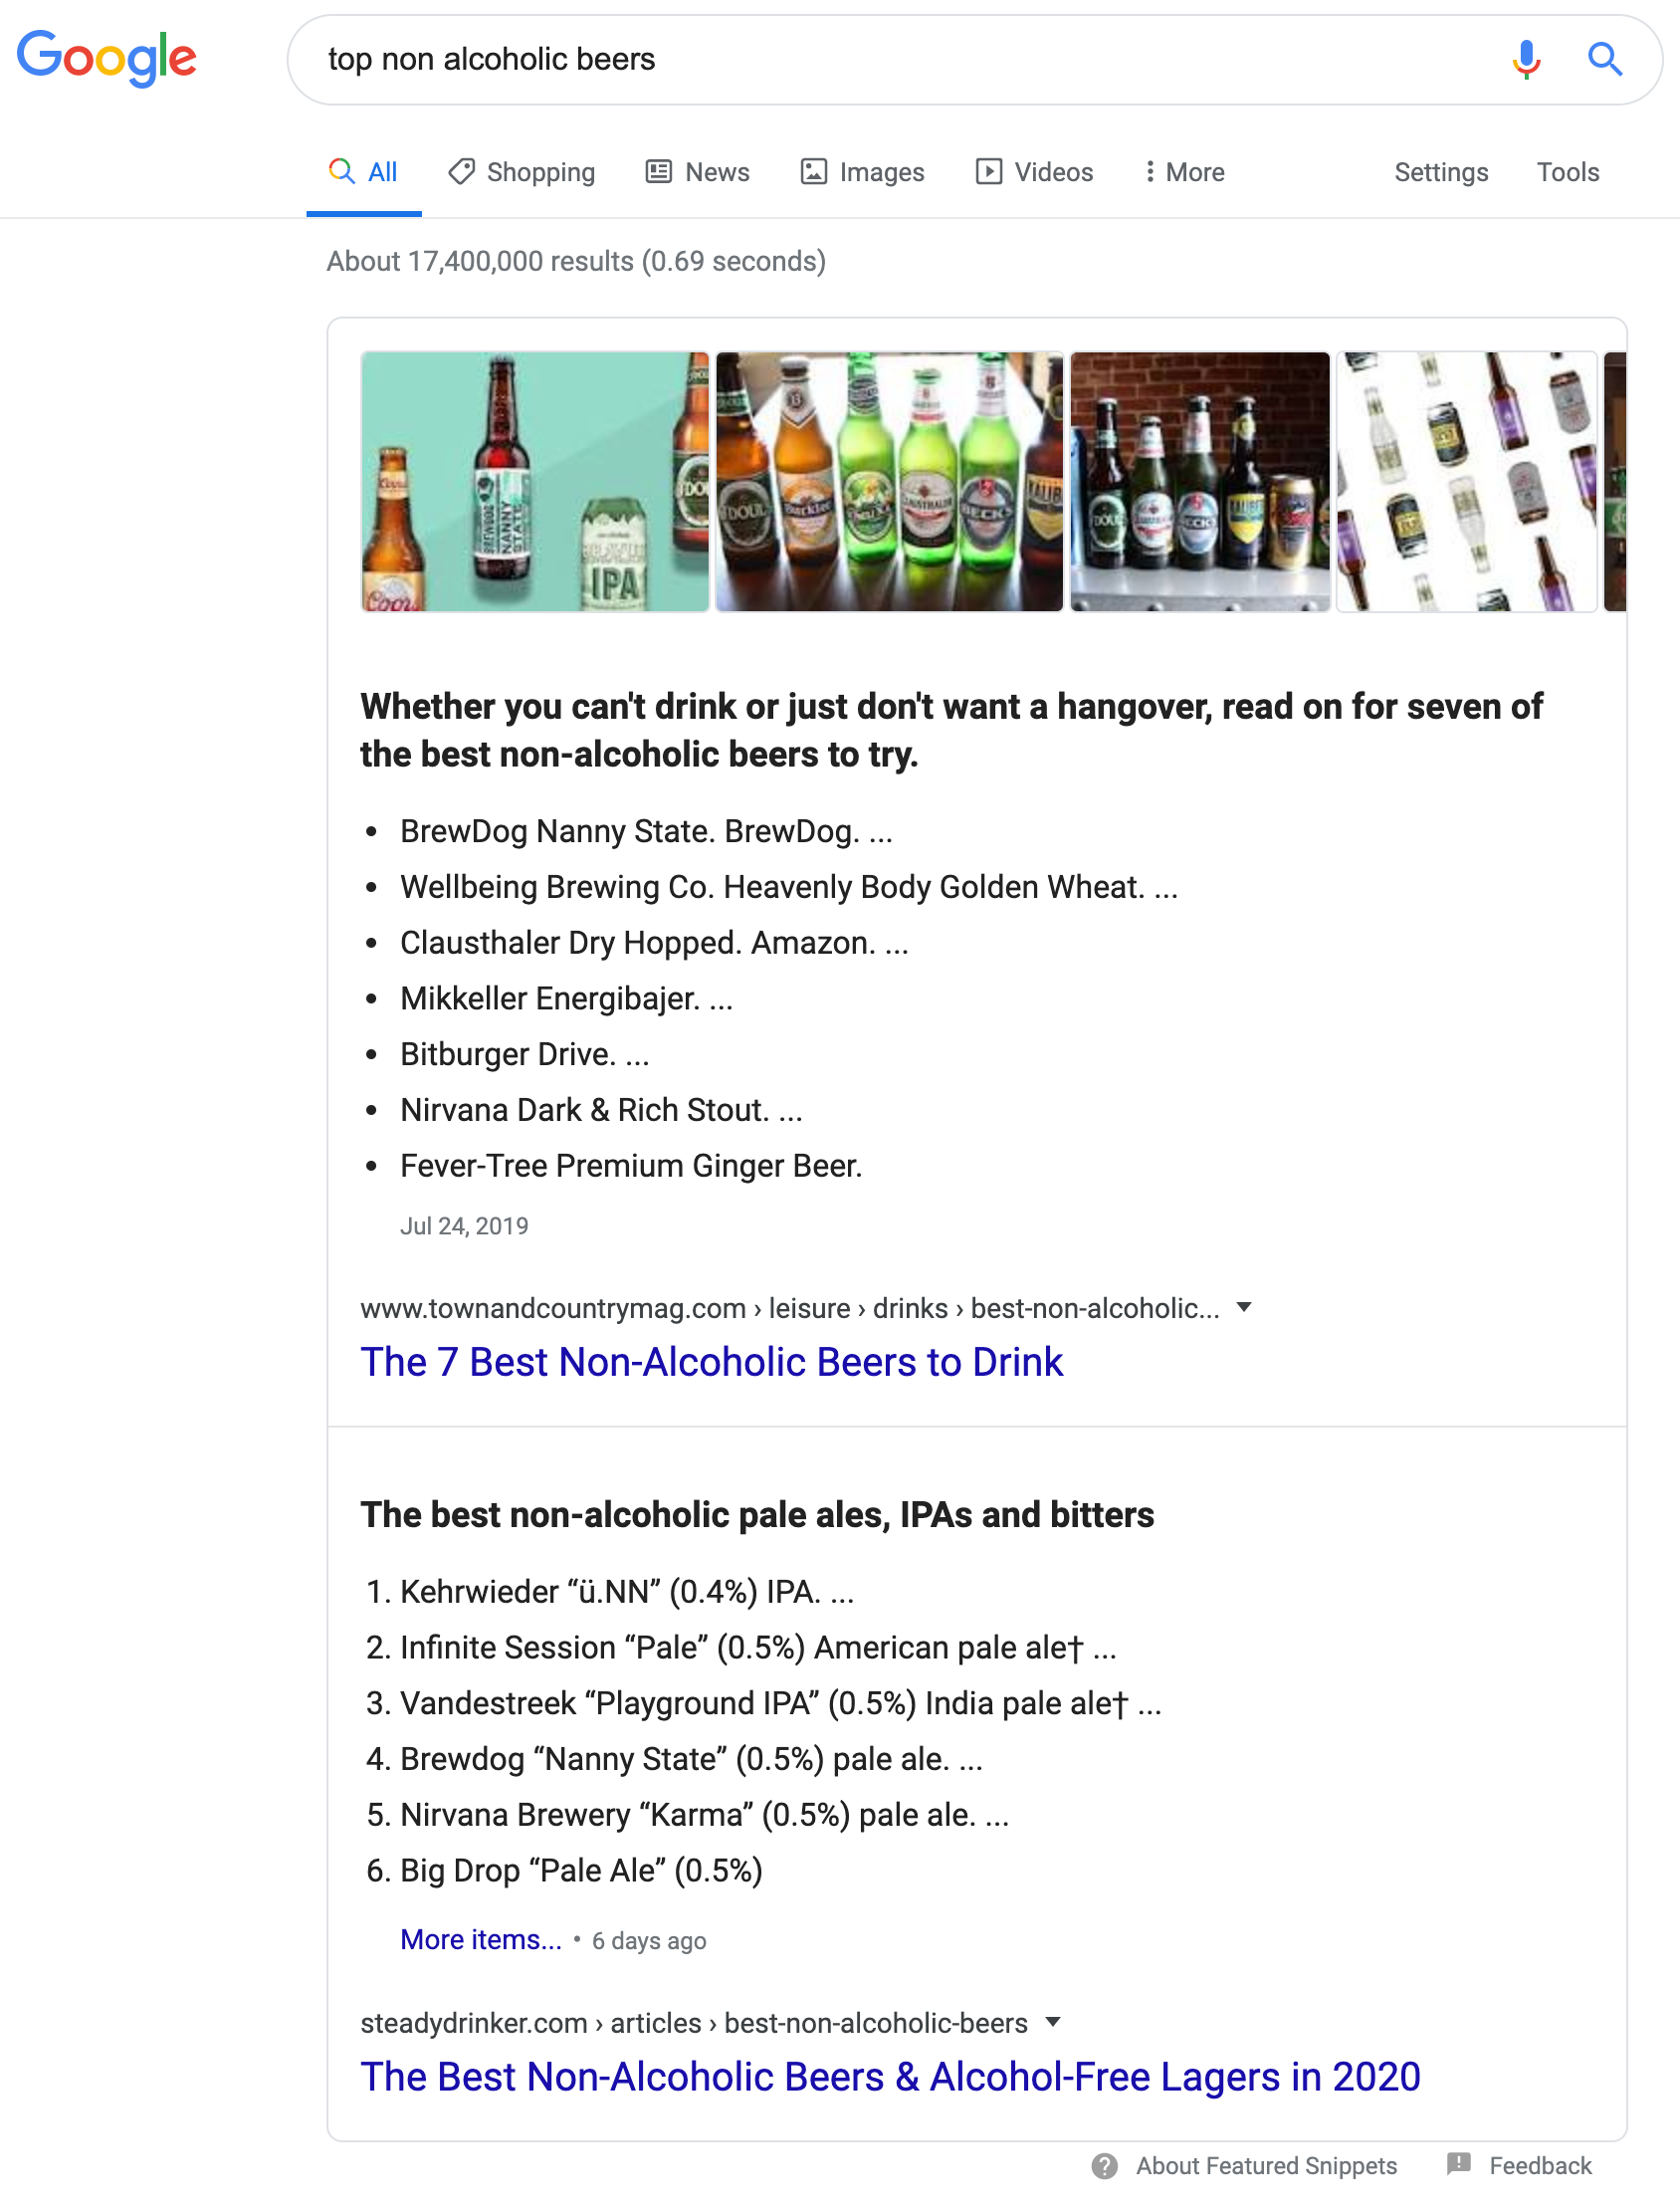 top non alcoholic beers - Google Search